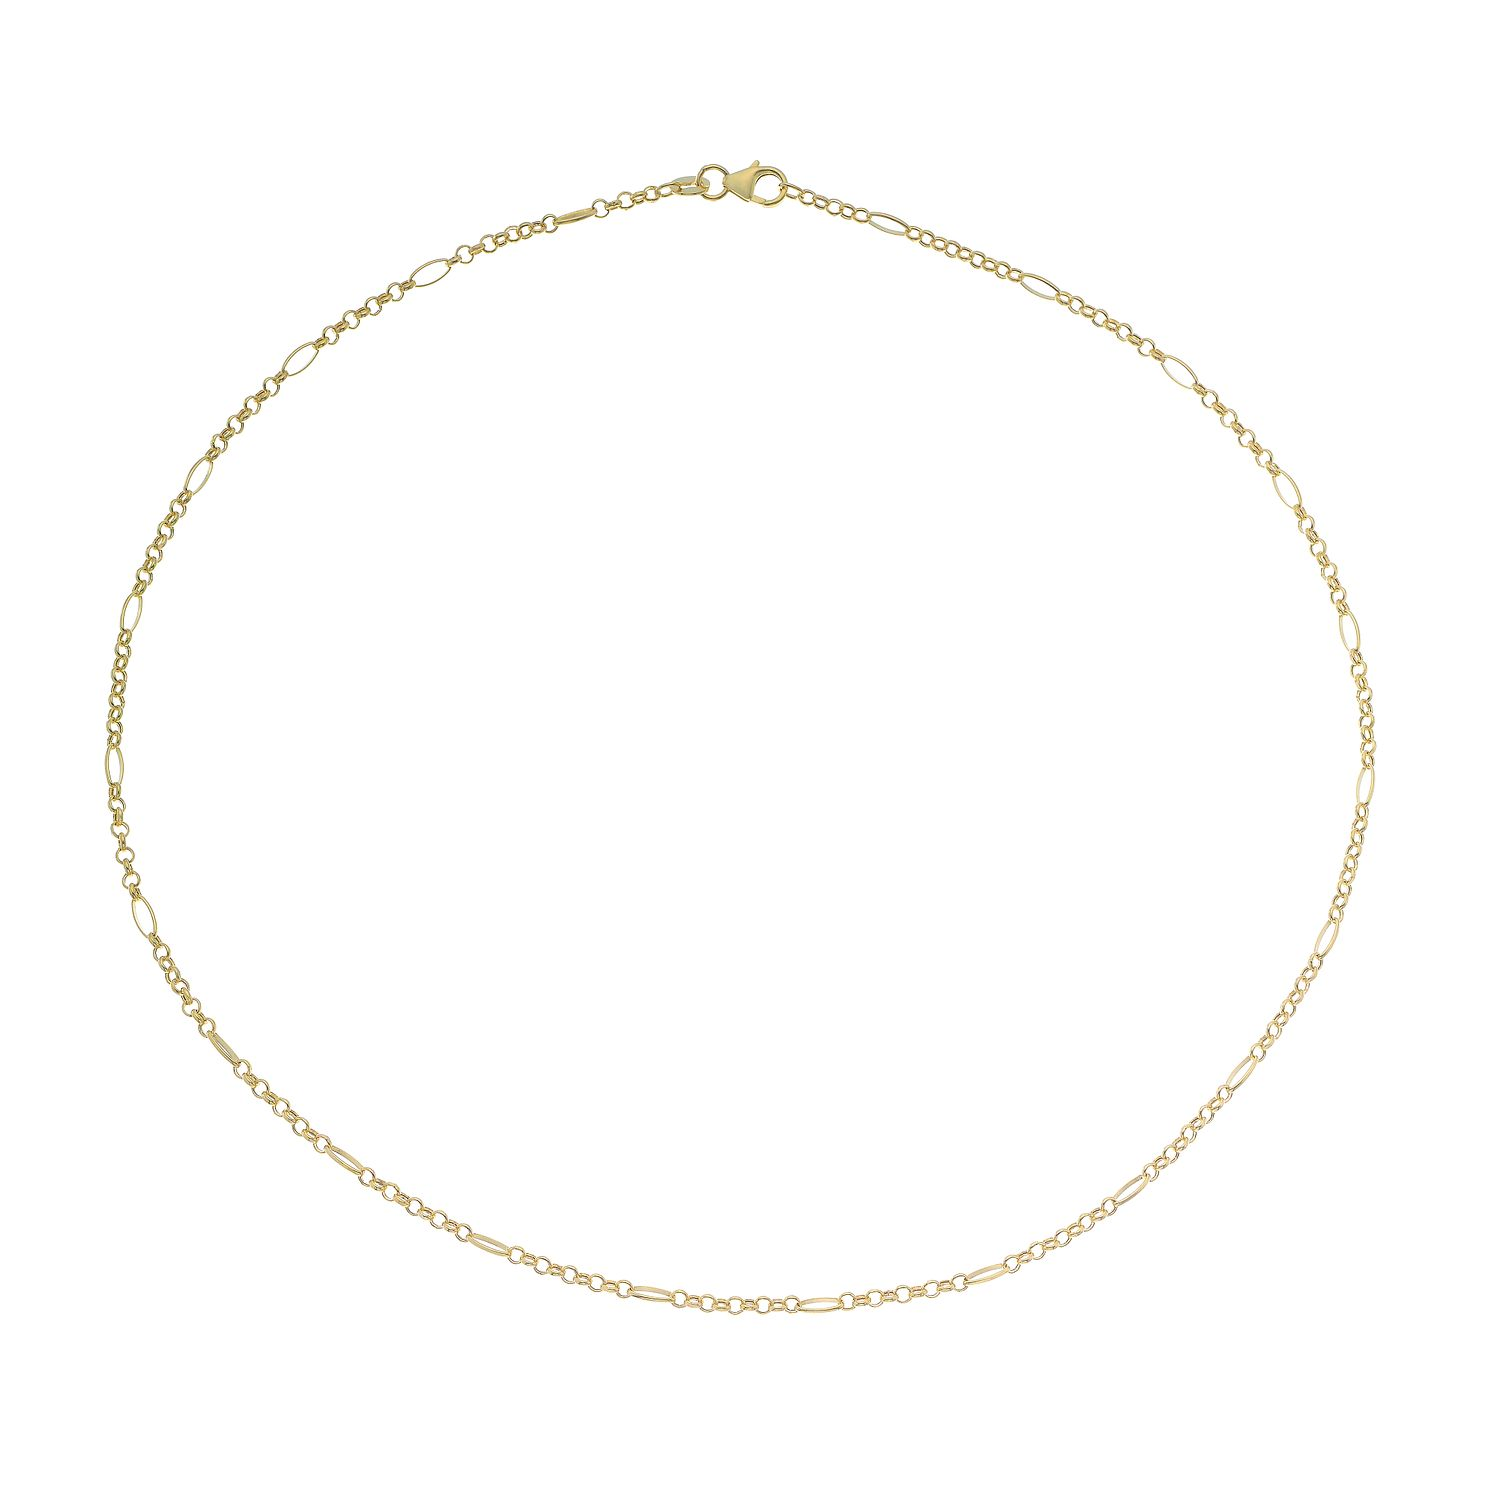 9ct Yellow Gold Oval Link Belcher Chain Necklace - Product number 4672607